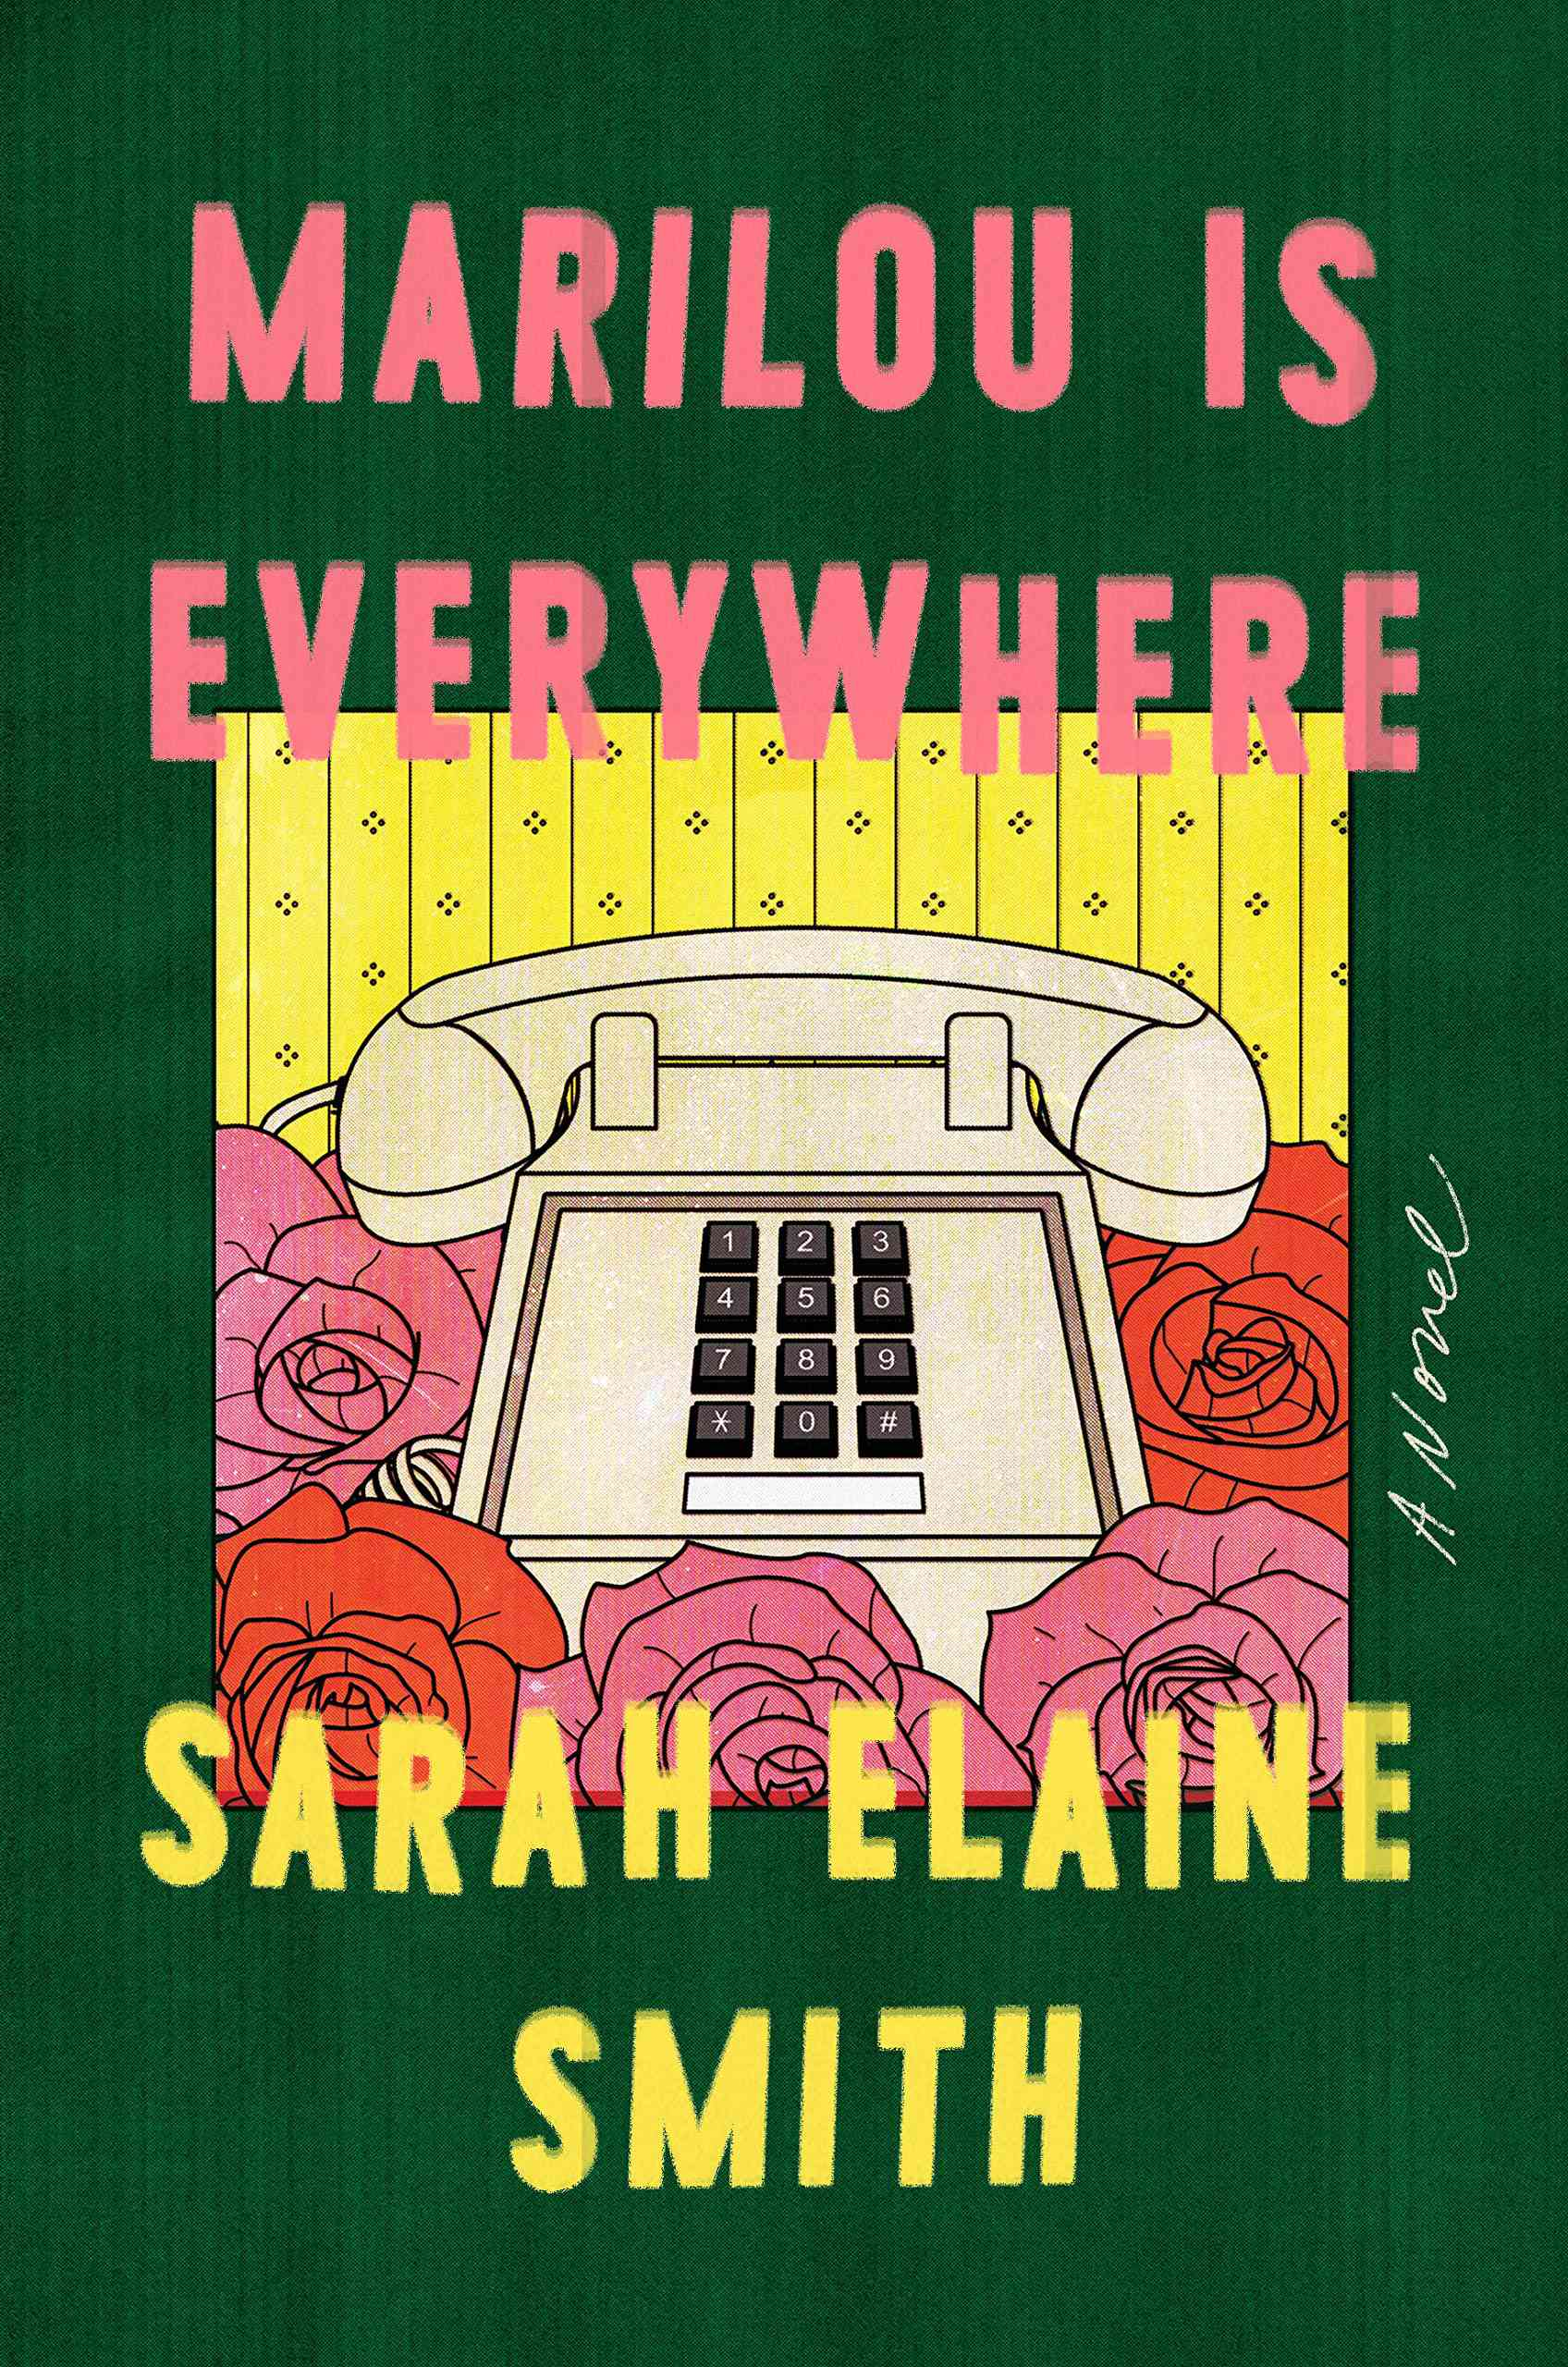 A green book cover, entitled Marilou is Everywhere, by Sarah Elaine Smith.